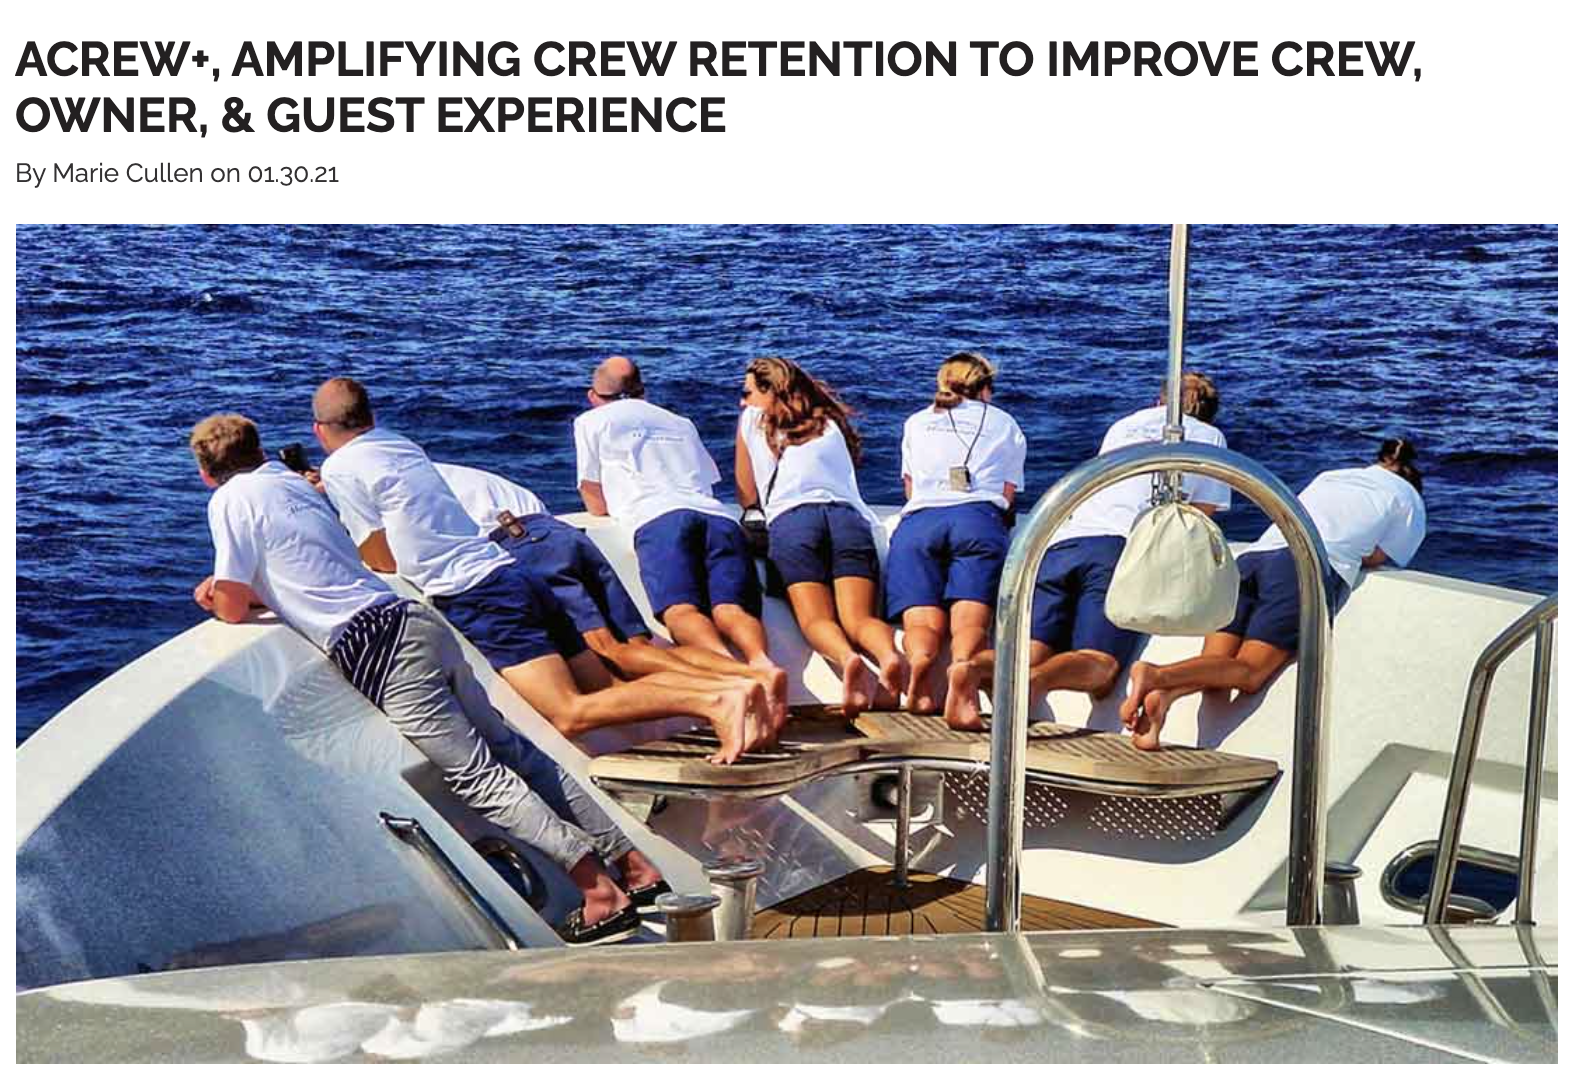 ACREW+, AMPLIFYING CREW RETENTION TO IMPROVE CREW, OWNER, & GUEST EXPERIENCE